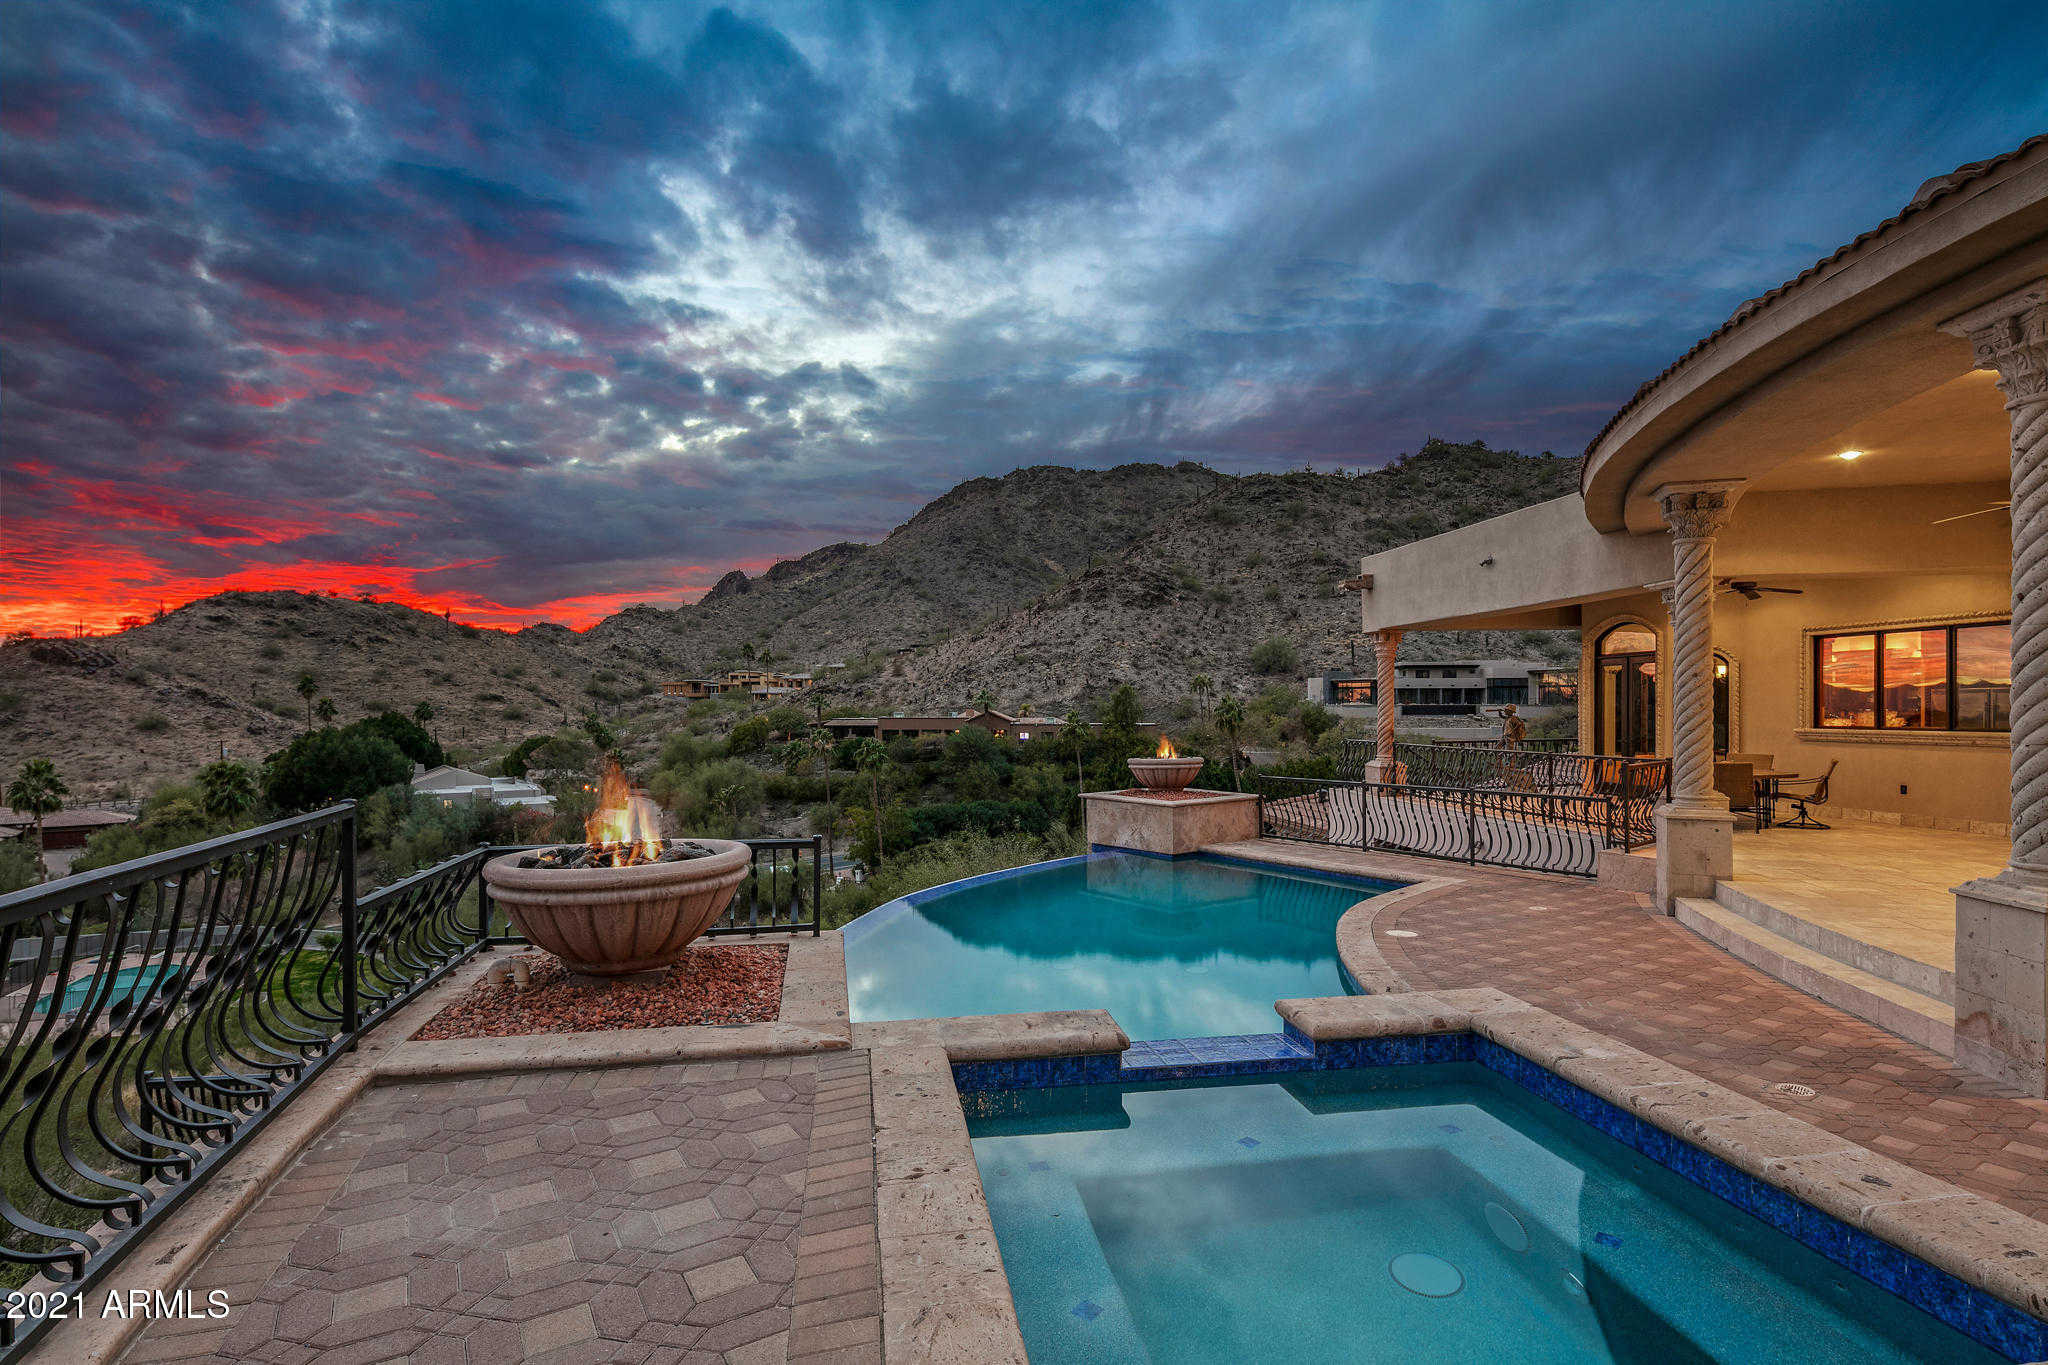 $4,300,000 - 4Br/7Ba - Home for Sale in Clearwater Hills 2 Private Roads, Paradise Valley